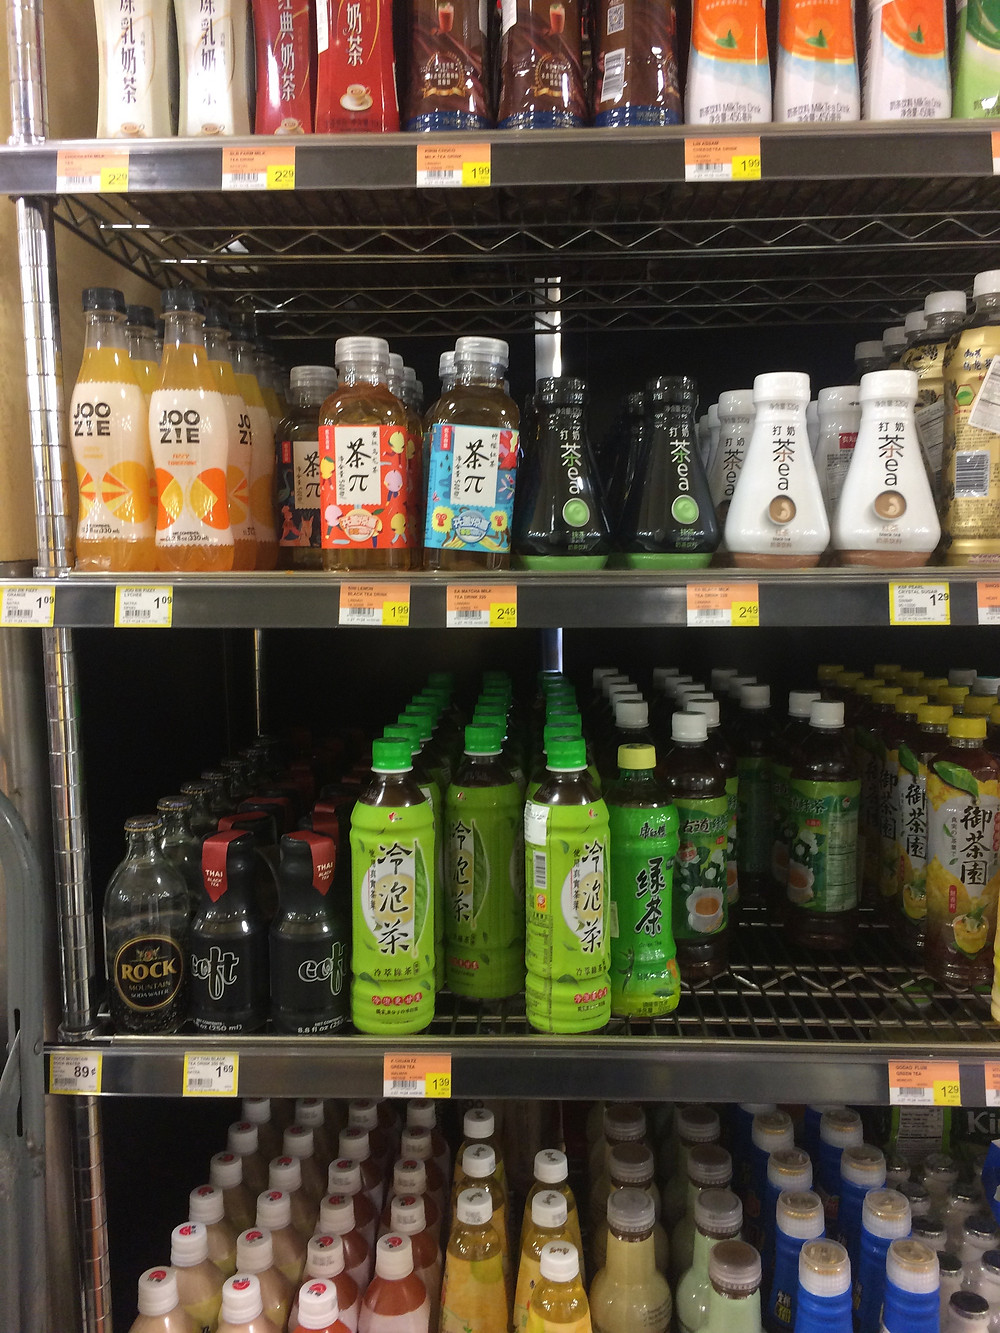 I have office sickness and will always look at the bottled tea sections of grocery stores (RTD or ready-to-drink is what we call it in the industry)